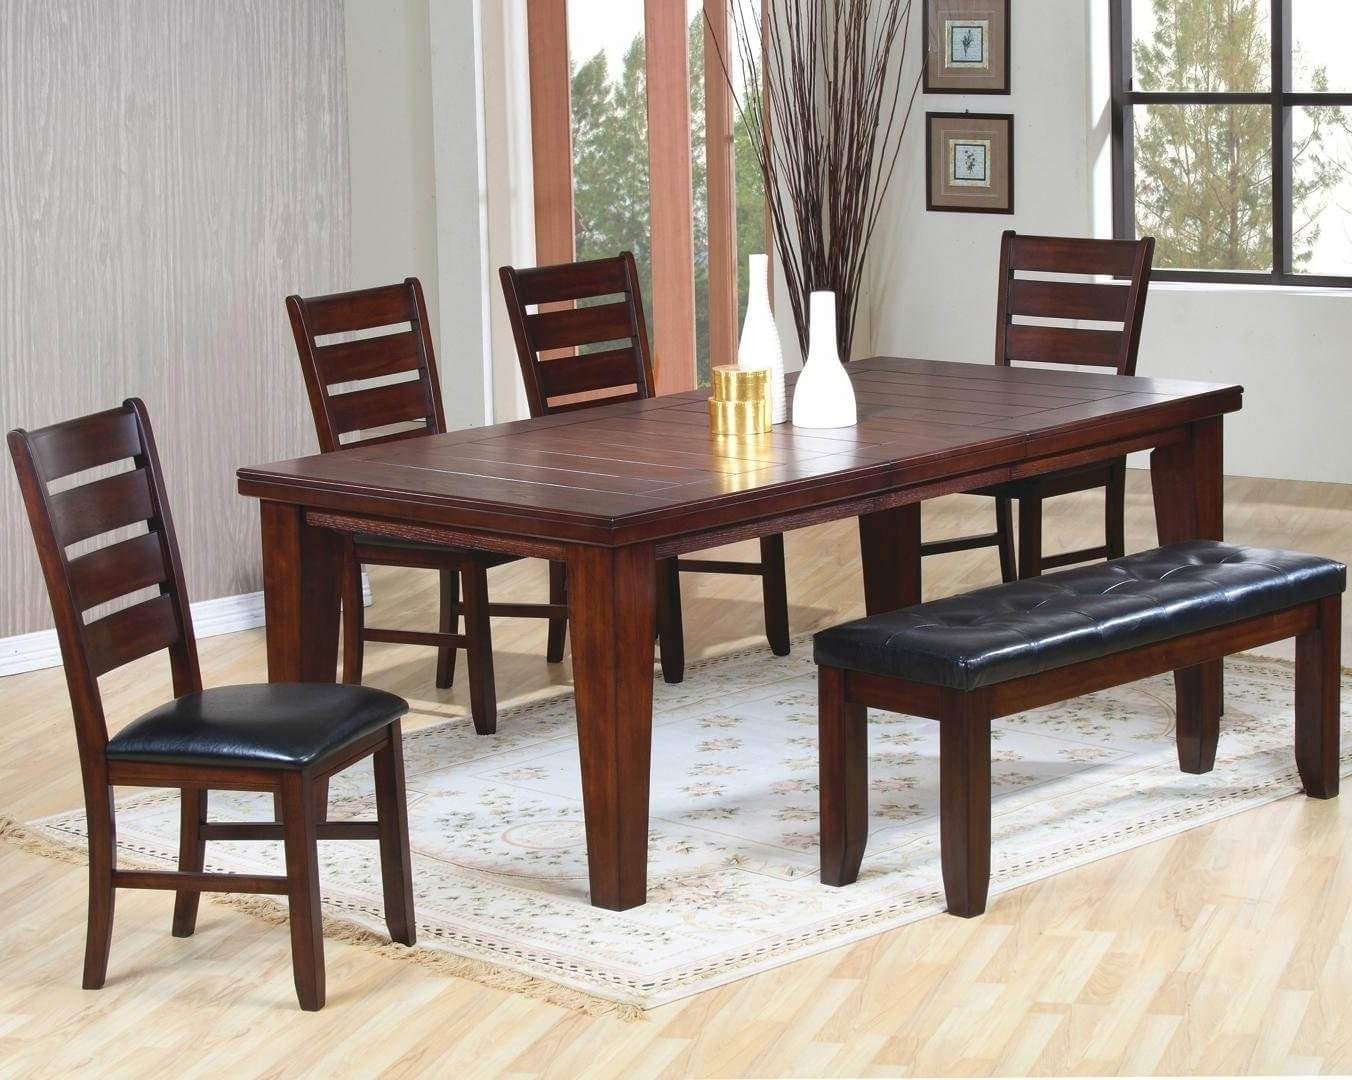 Preferred 26 Dining Room Sets (Big And Small) With Bench Seating (2018) Within Dark Wood Dining Tables And 6 Chairs (Gallery 9 of 25)